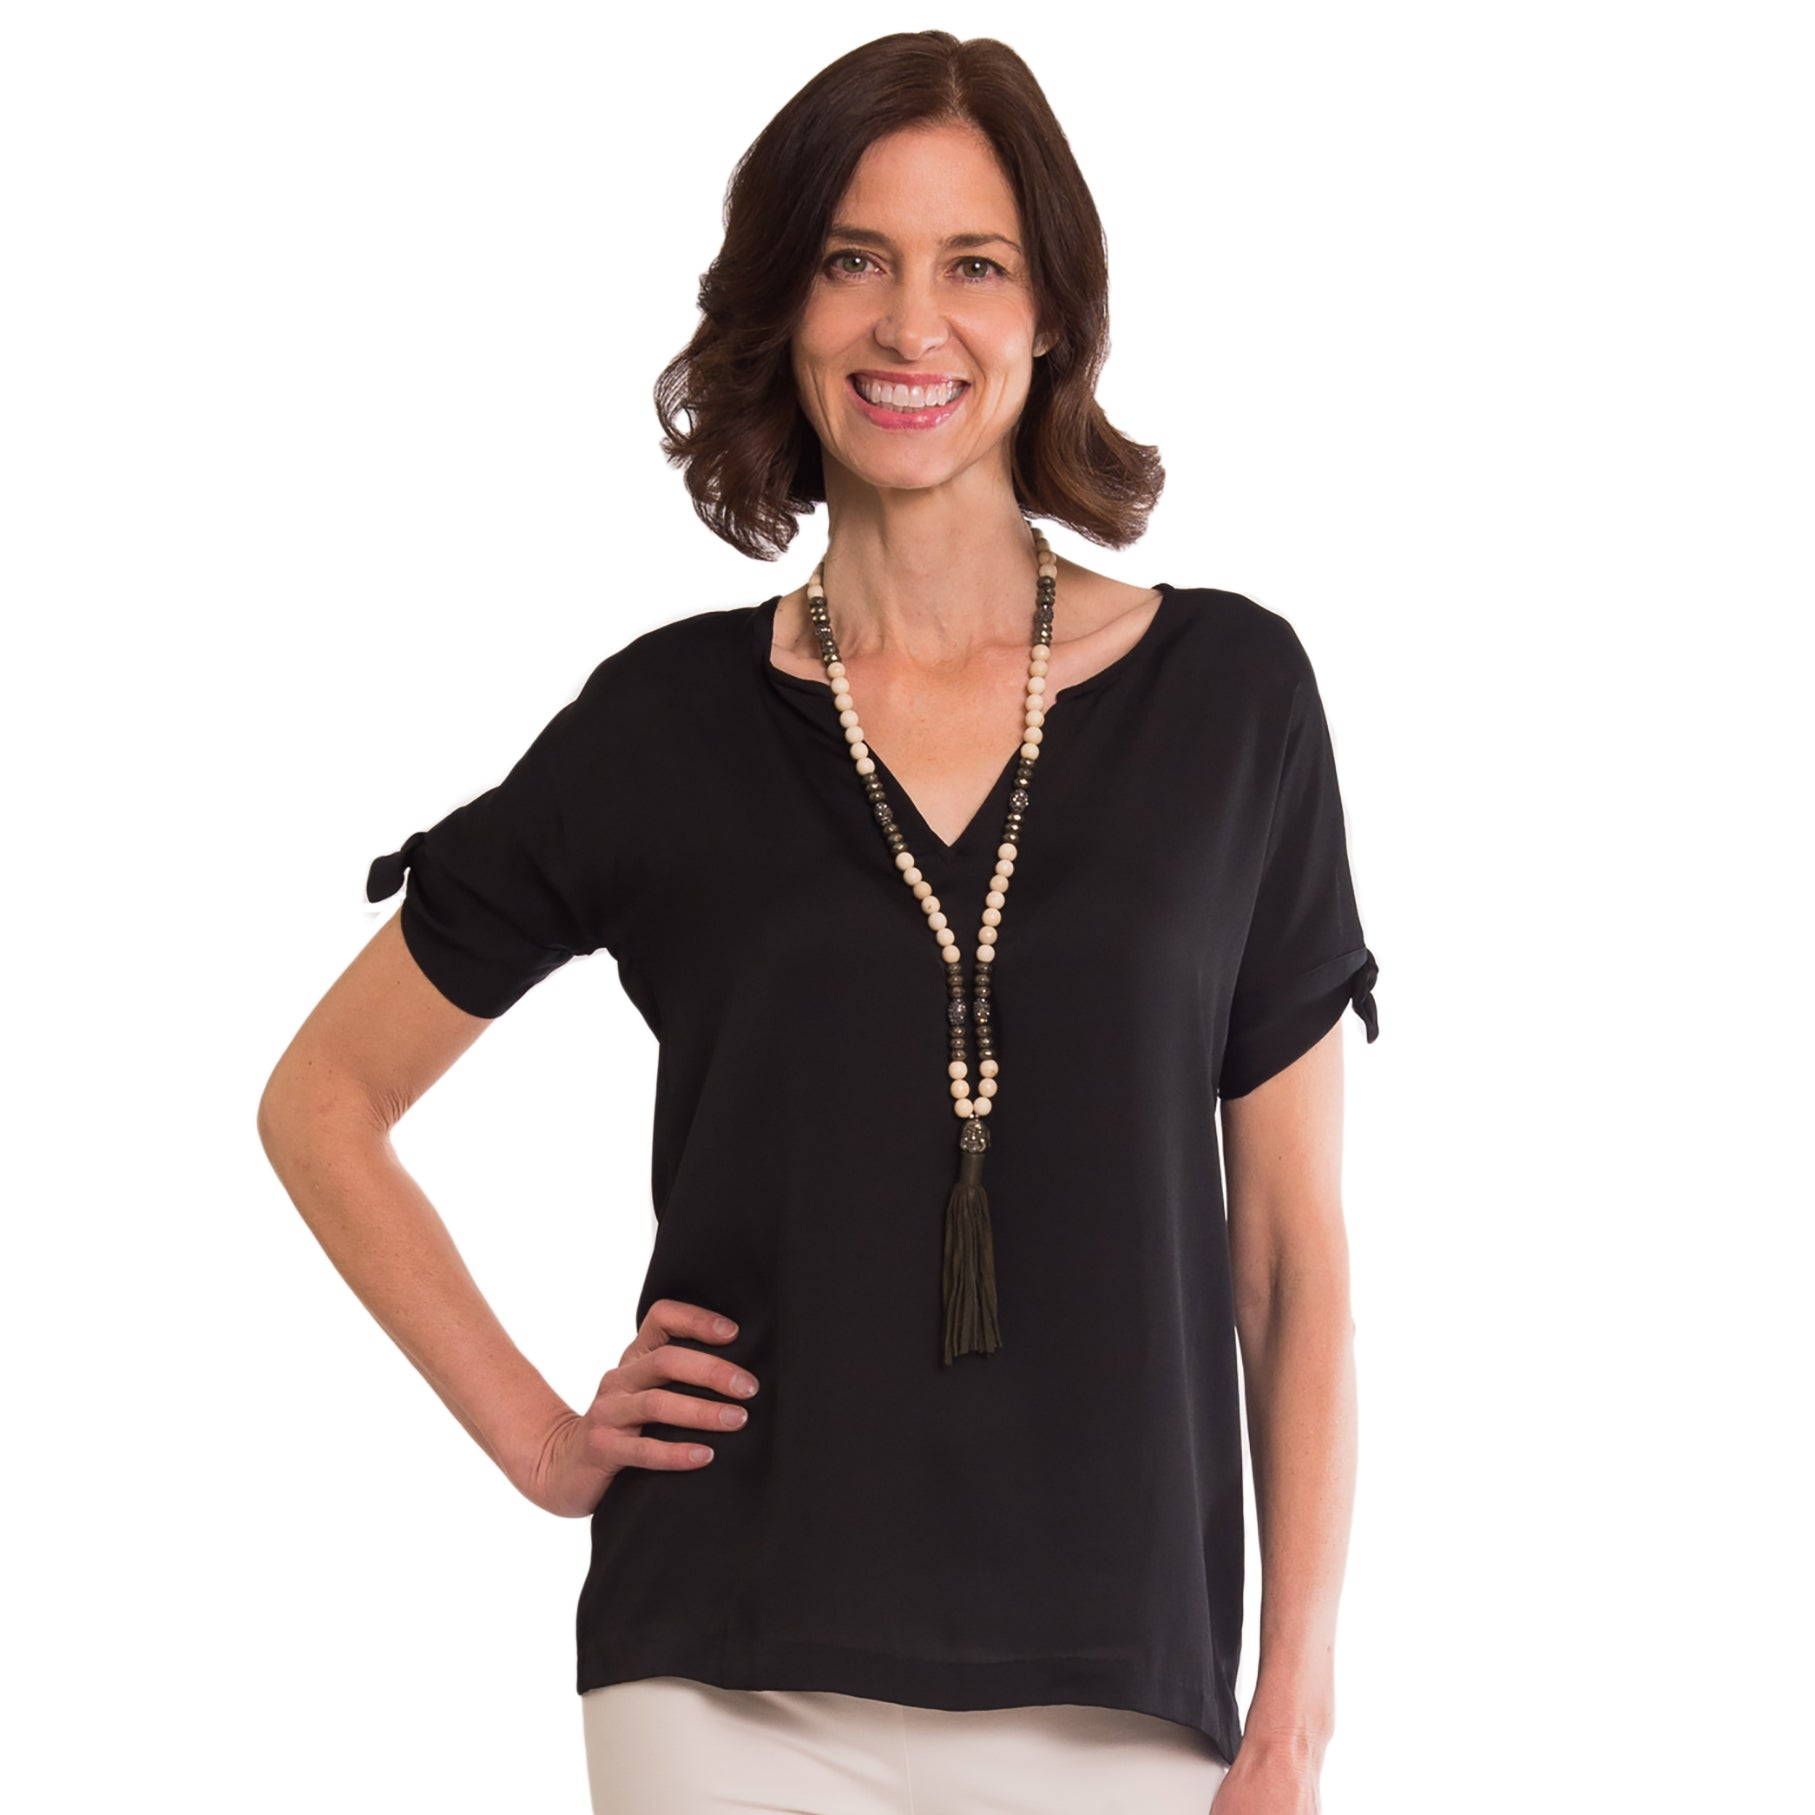 Natasha Tie Sleeve Blouse in Black - Elizabeth Ackerman New York